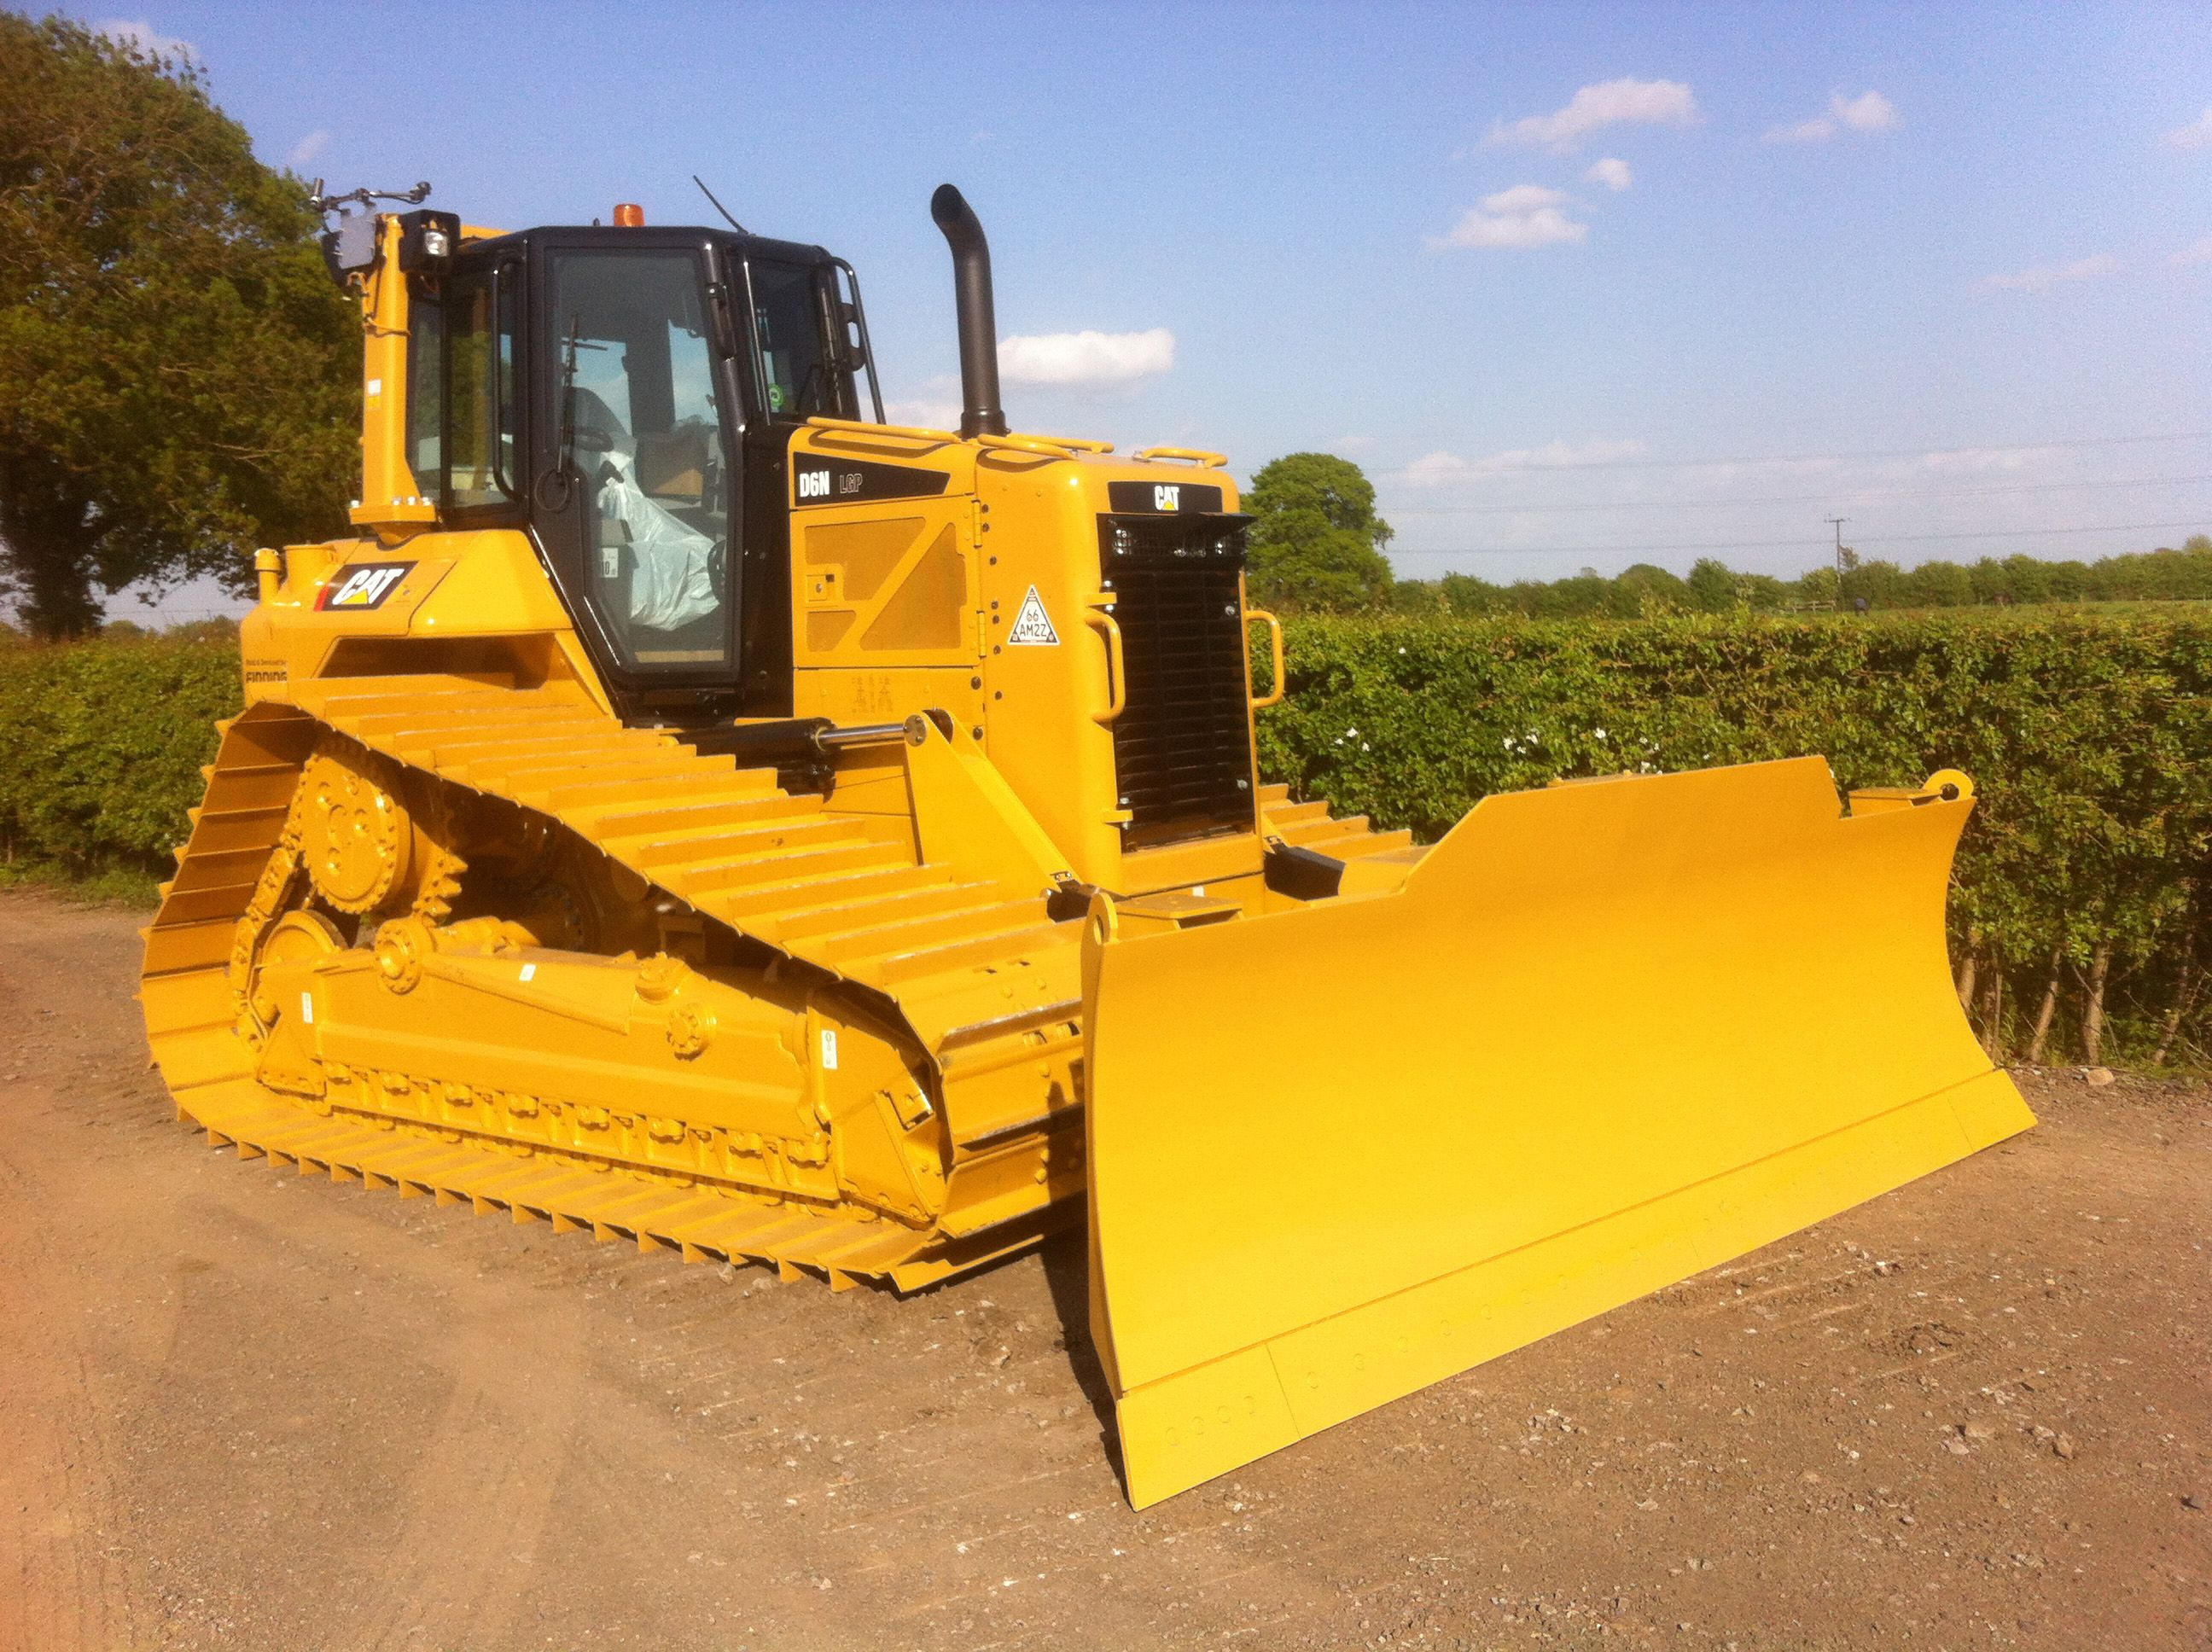 CAT D6N LGP DOZER - Ross Plant Hire Yorkshire